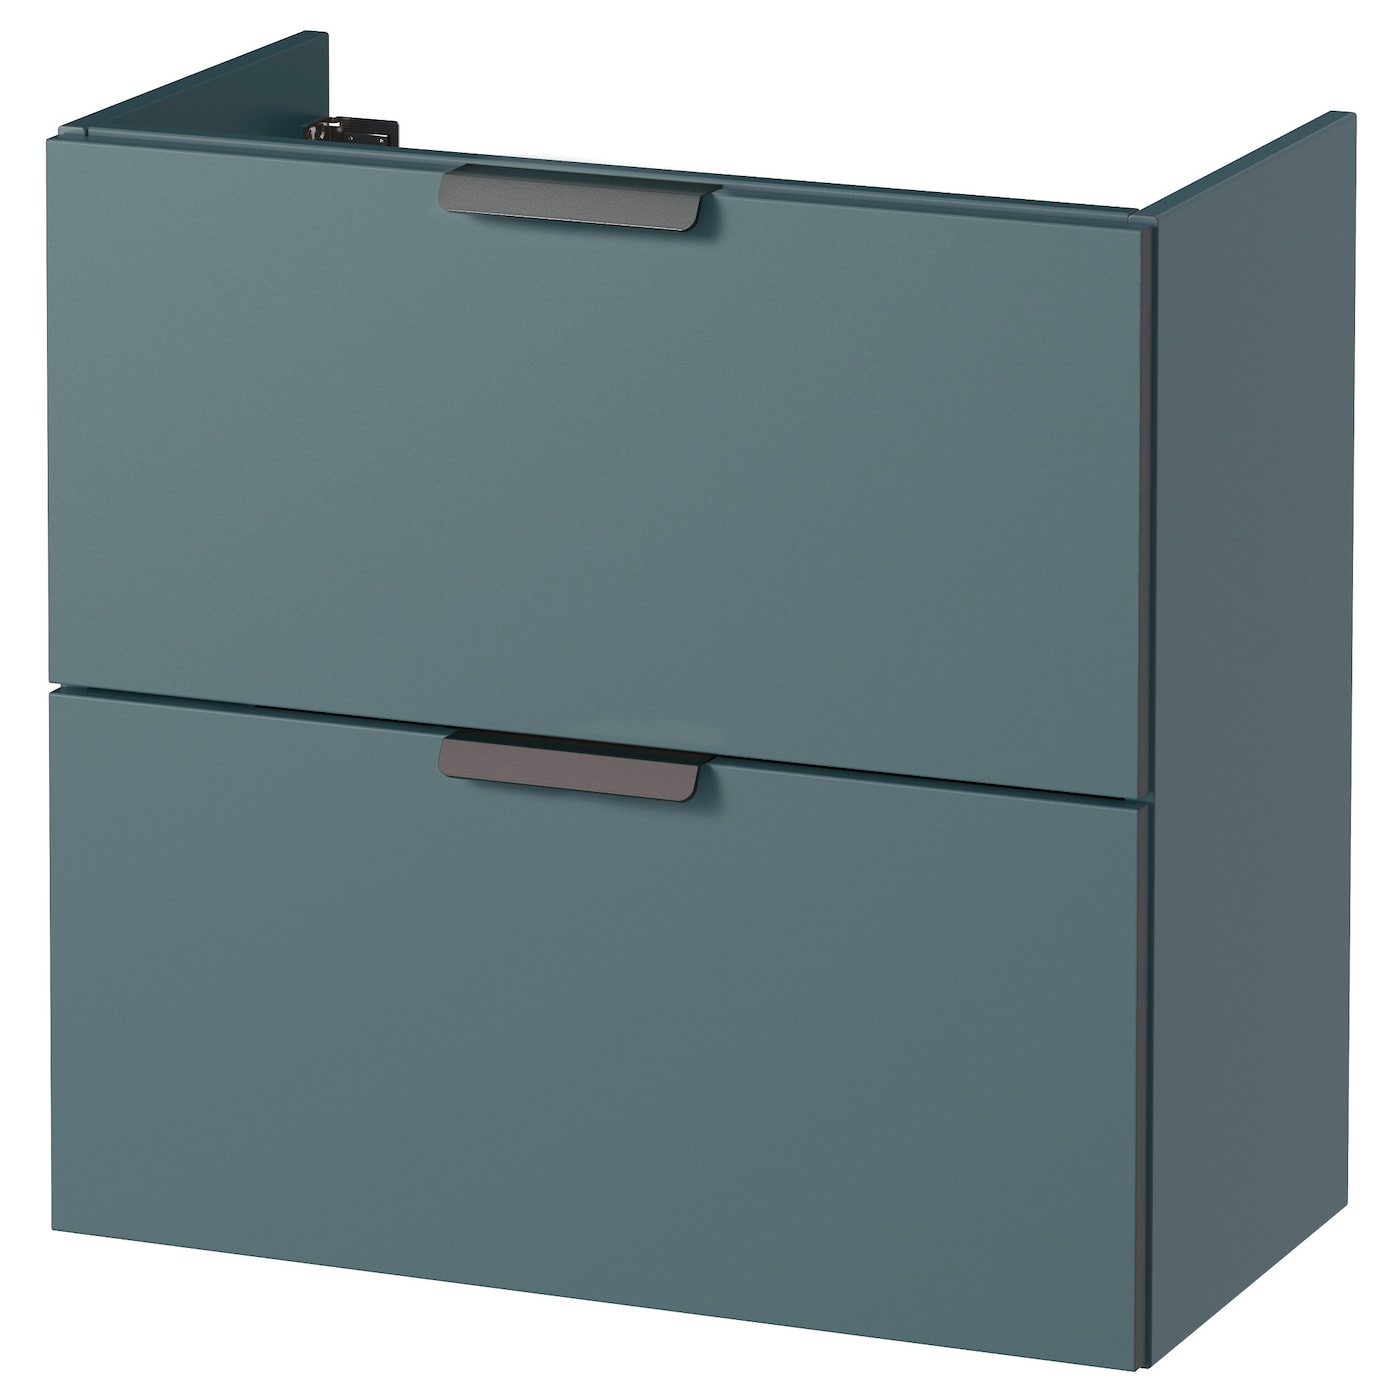 godmorgon meuble lavabo 2tir gris turquoise 60x32x58 cm ikea. Black Bedroom Furniture Sets. Home Design Ideas